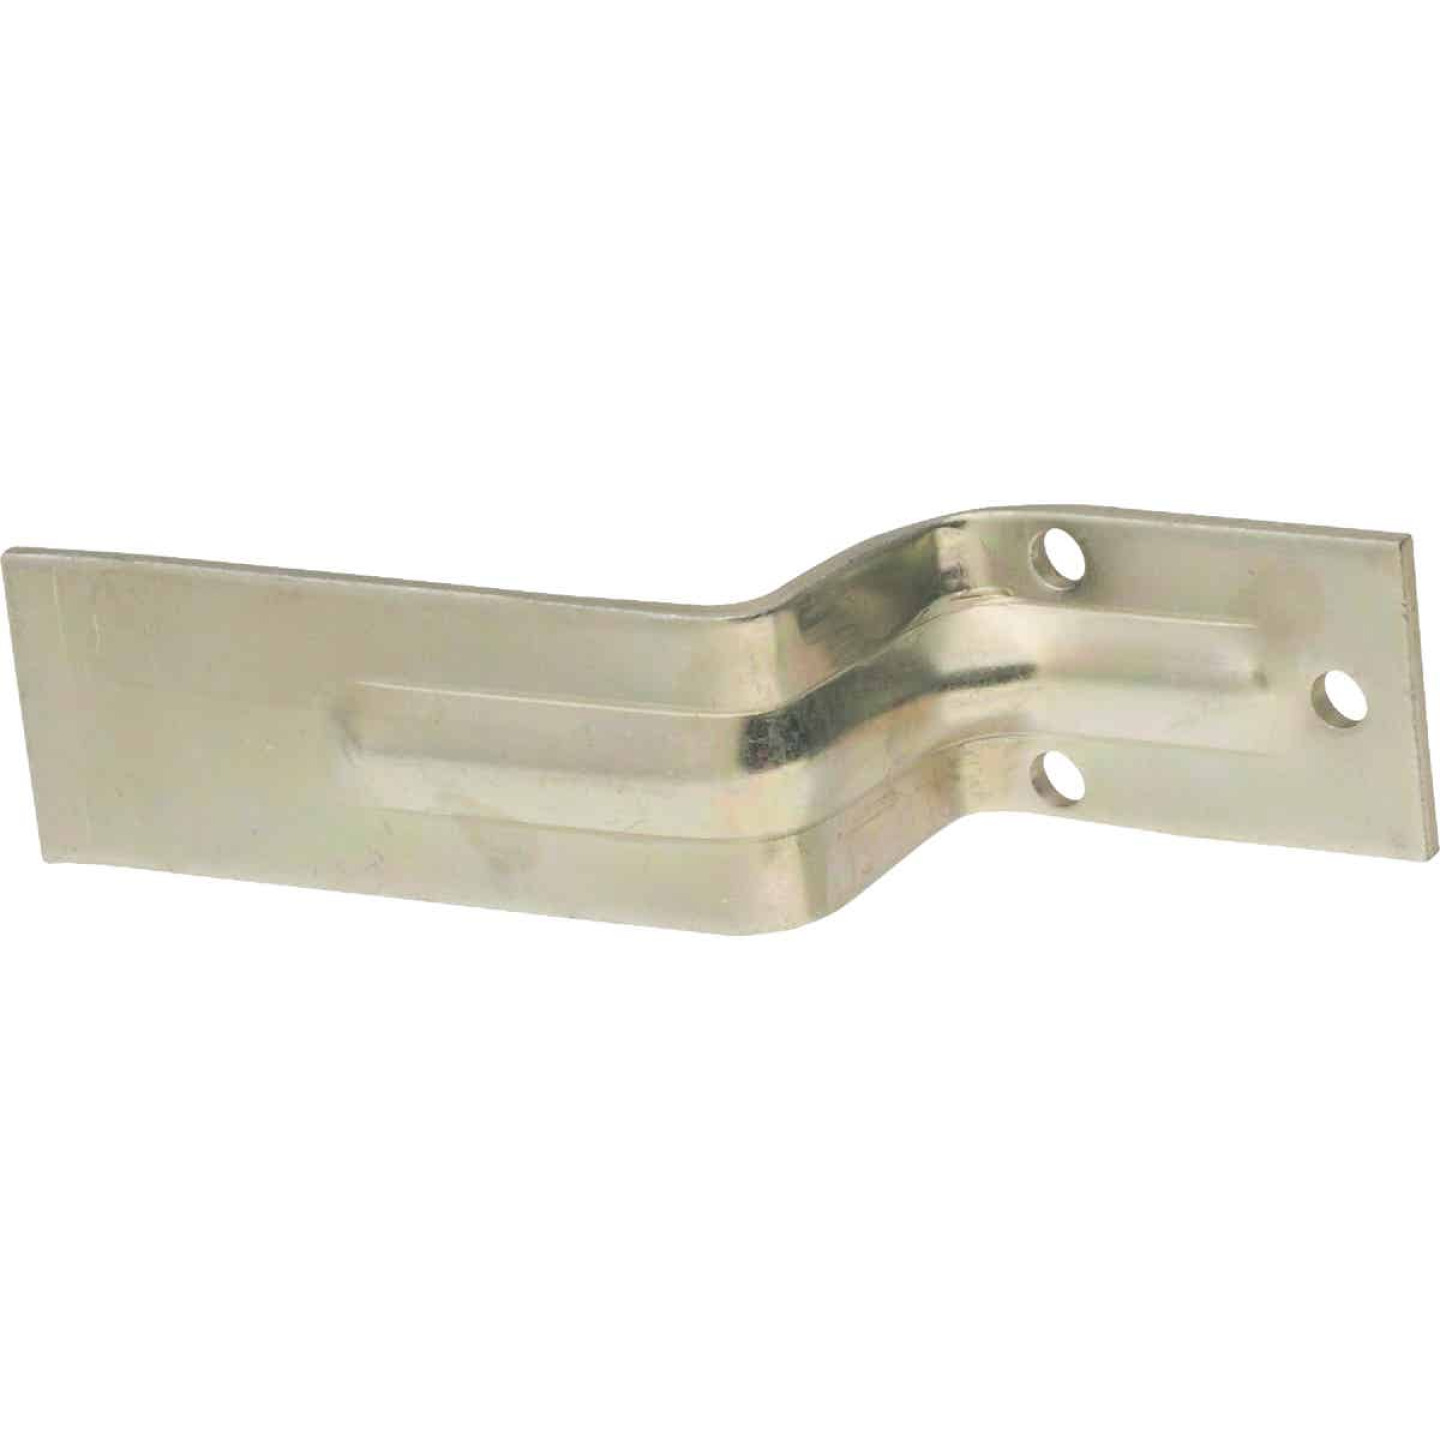 National 15BC Zinc Heavy Duty Open Bar Holder Image 2